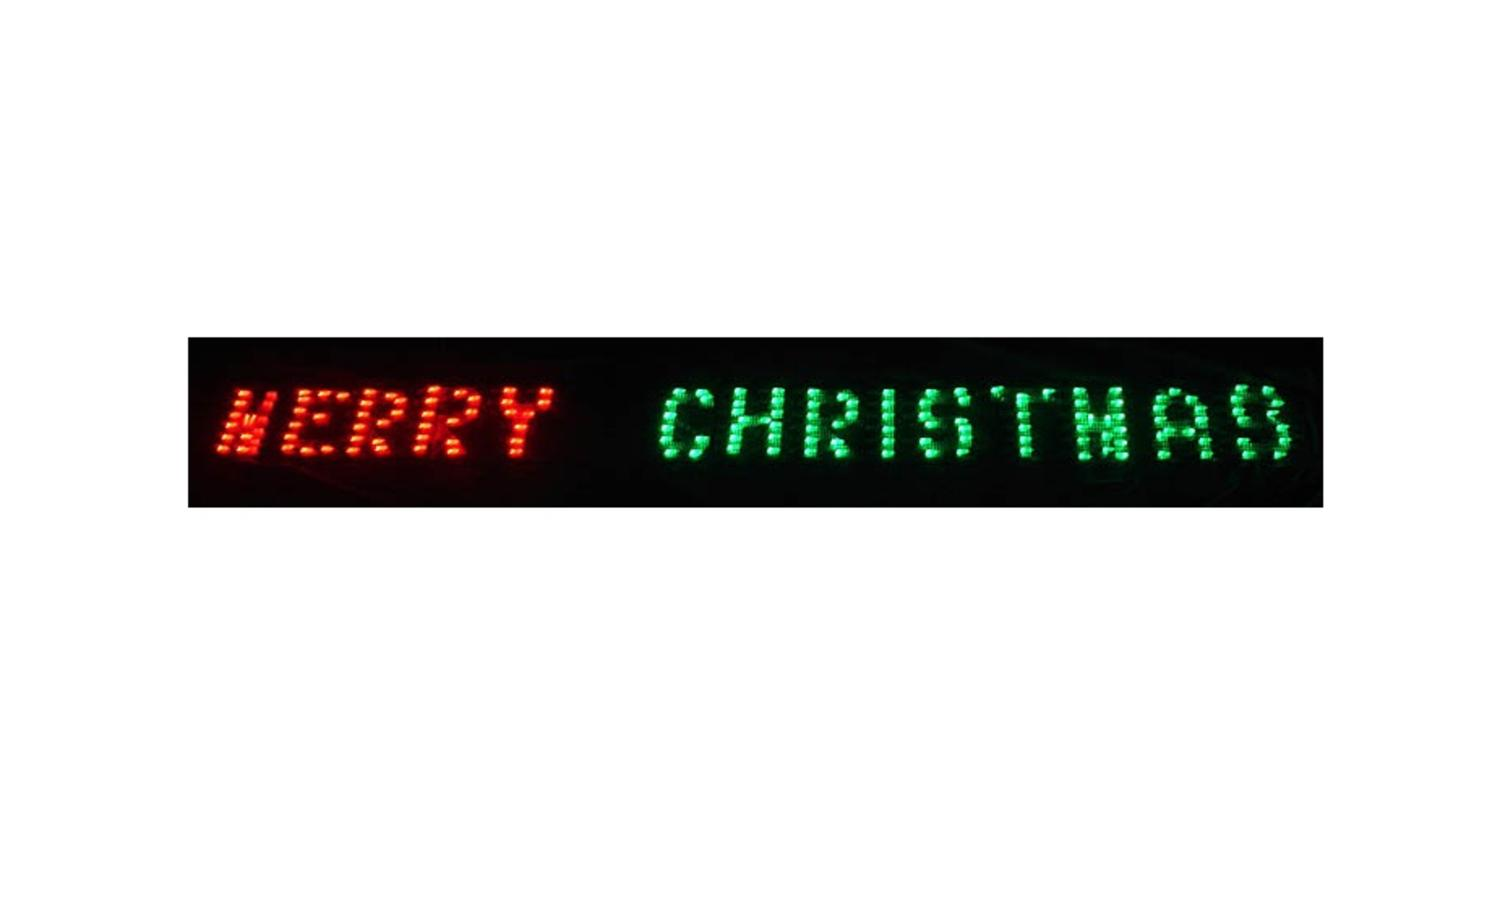 ''80'''' x 6'''' Merry Christmas LED Lighted HOLIDAY Banner - Red & Green Chasing Lights''